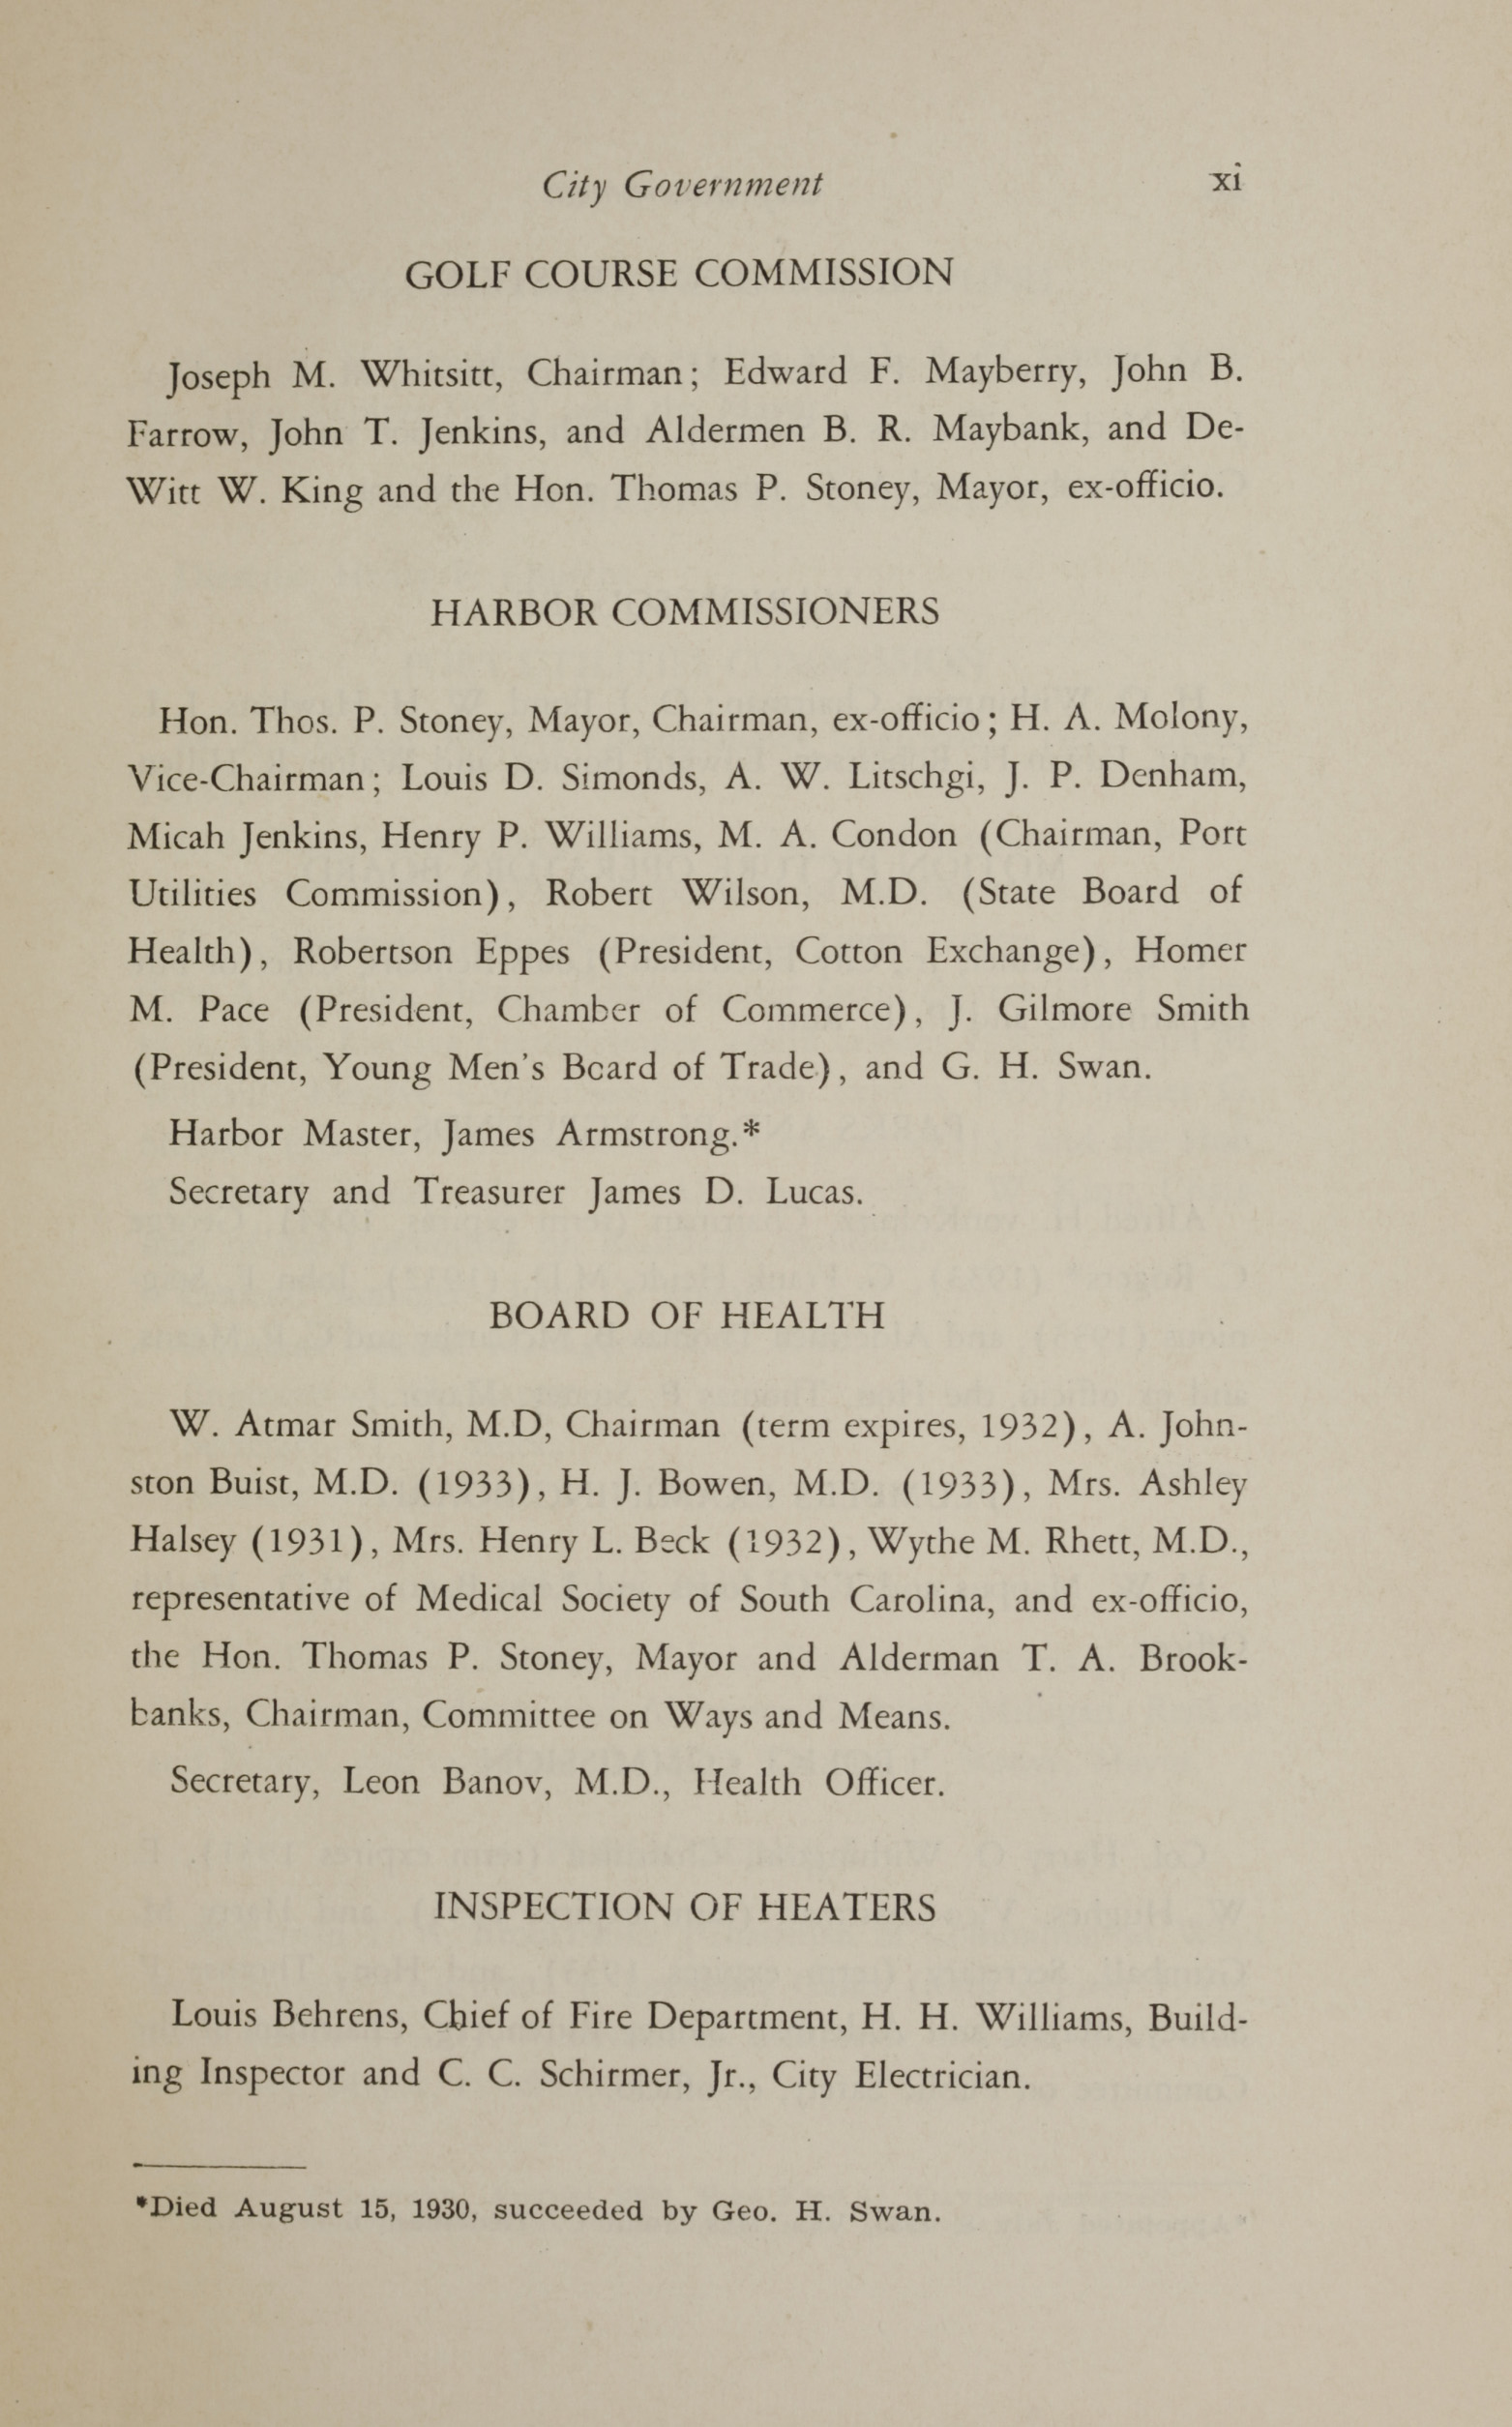 Charleston Yearbook, 1930, page xi